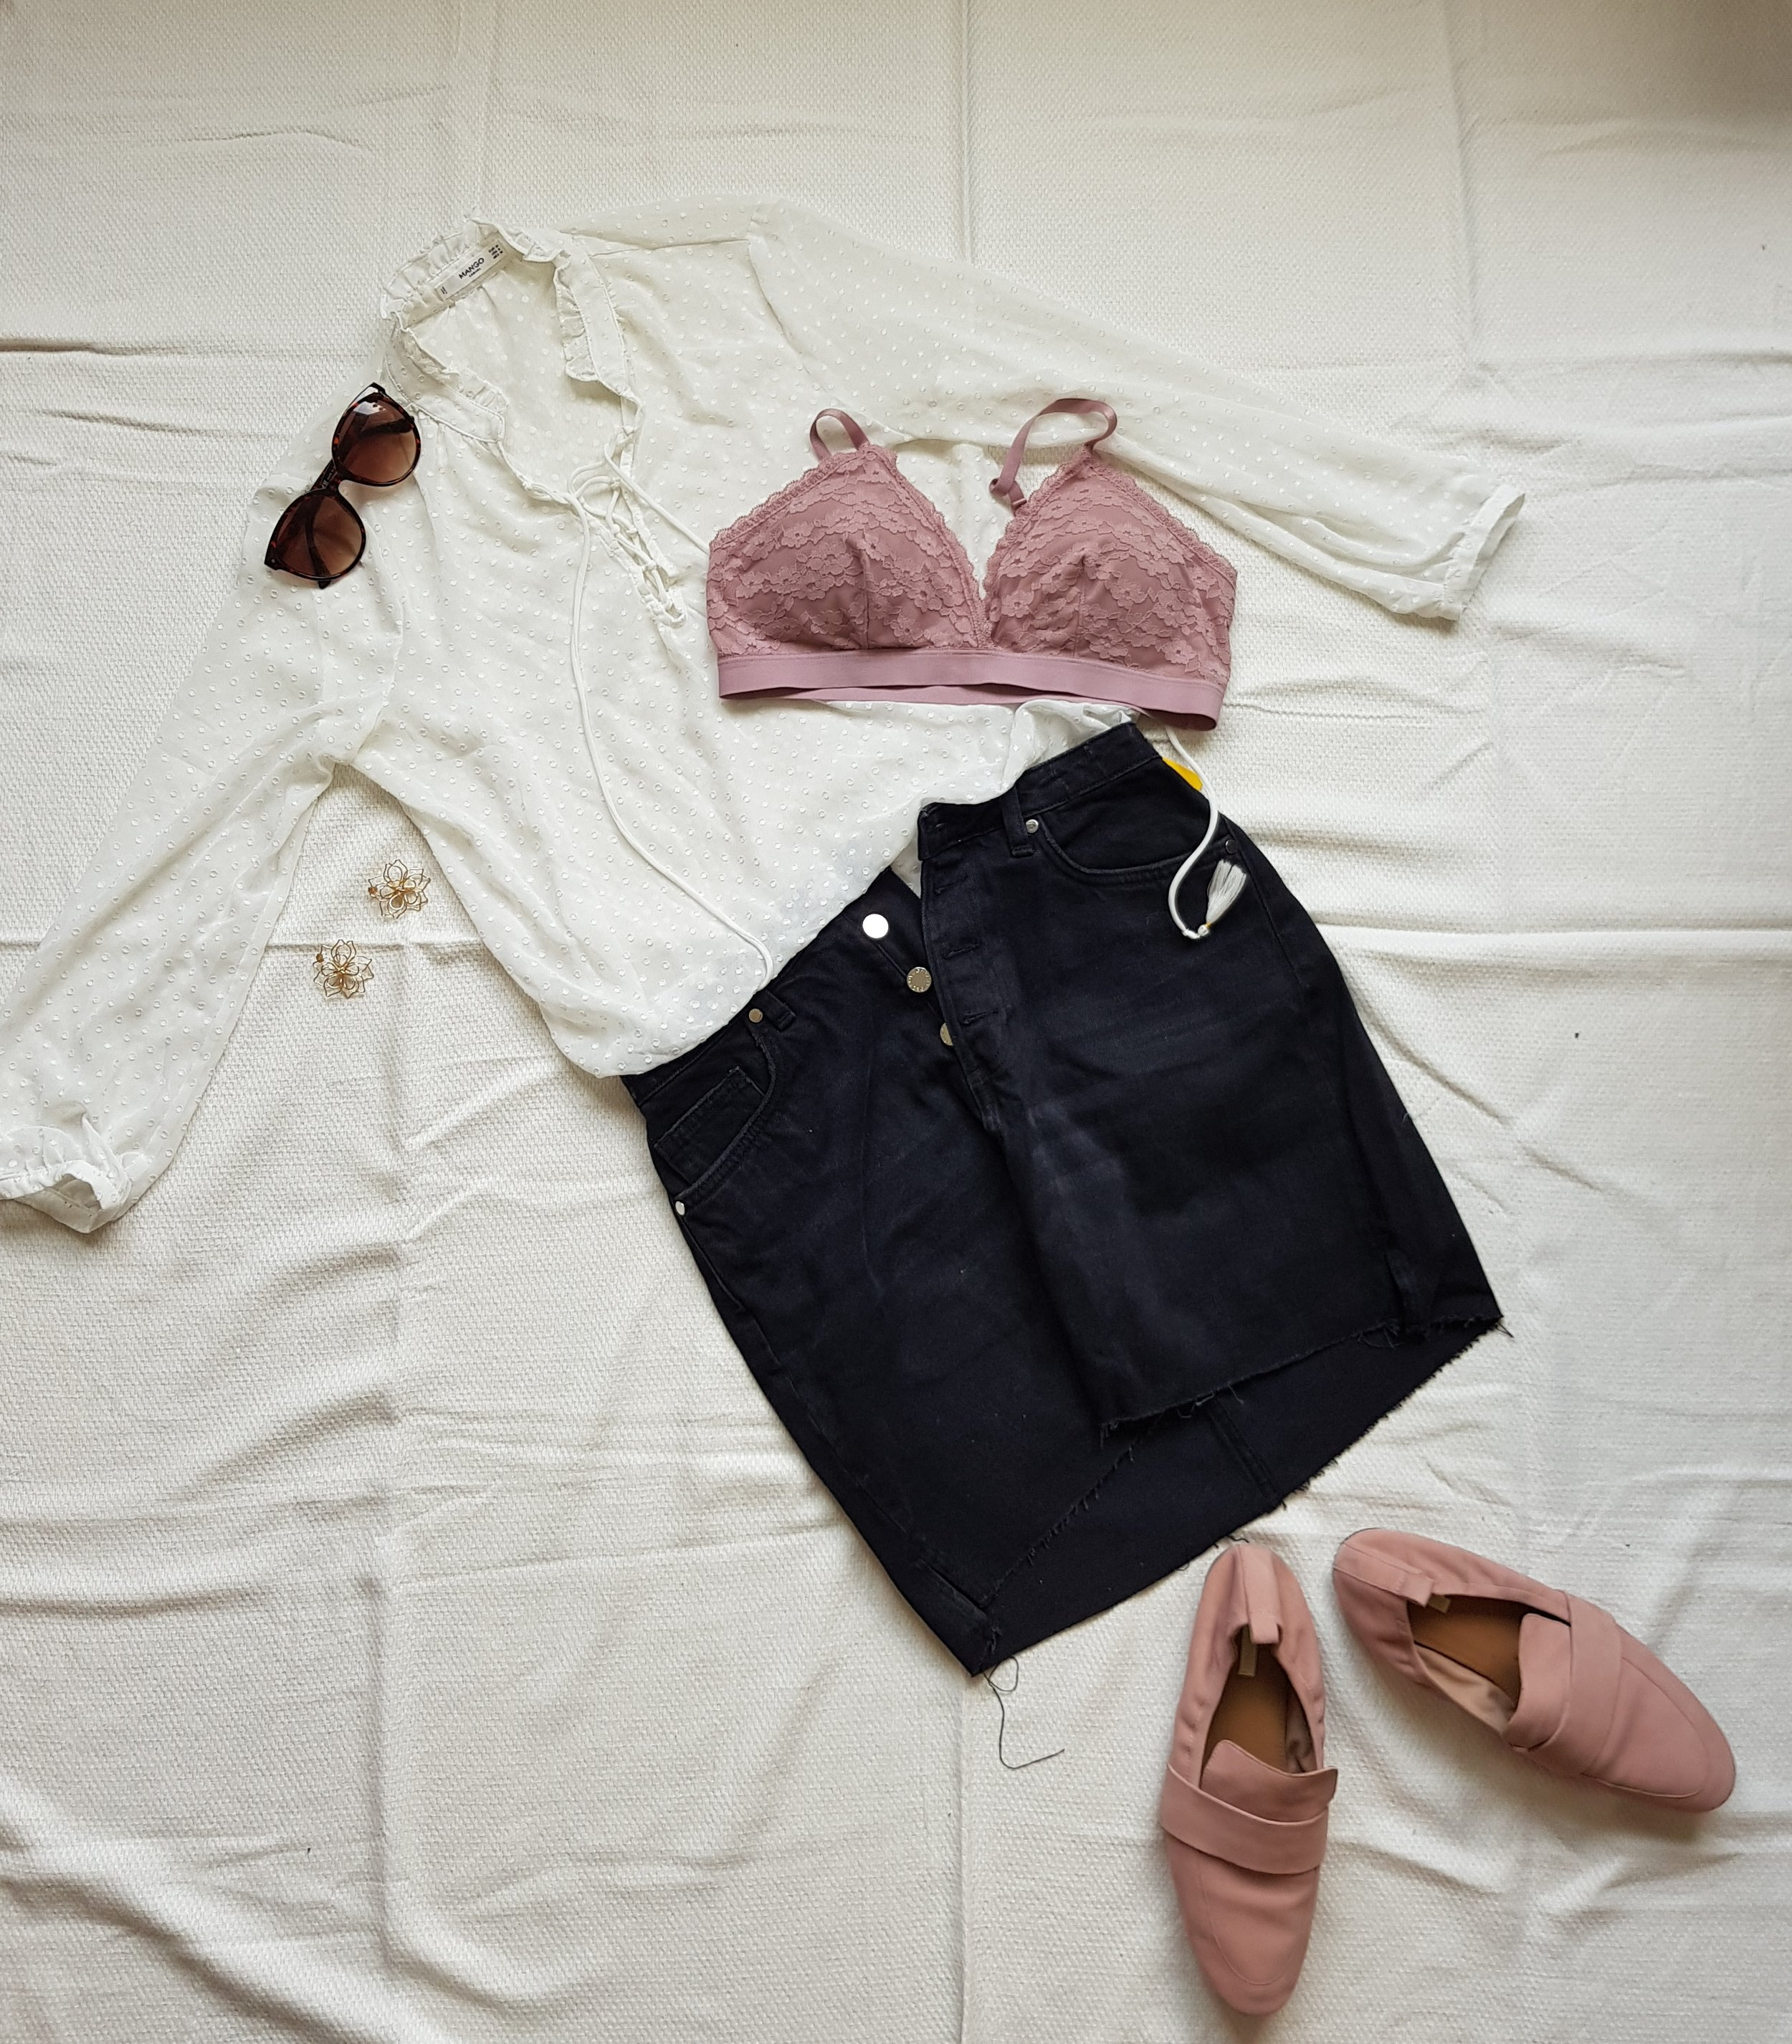 Airy in Pink - Blouse @MangoSkirt @H&MSoftbra, shoesEarrings and sunglasses @H&M